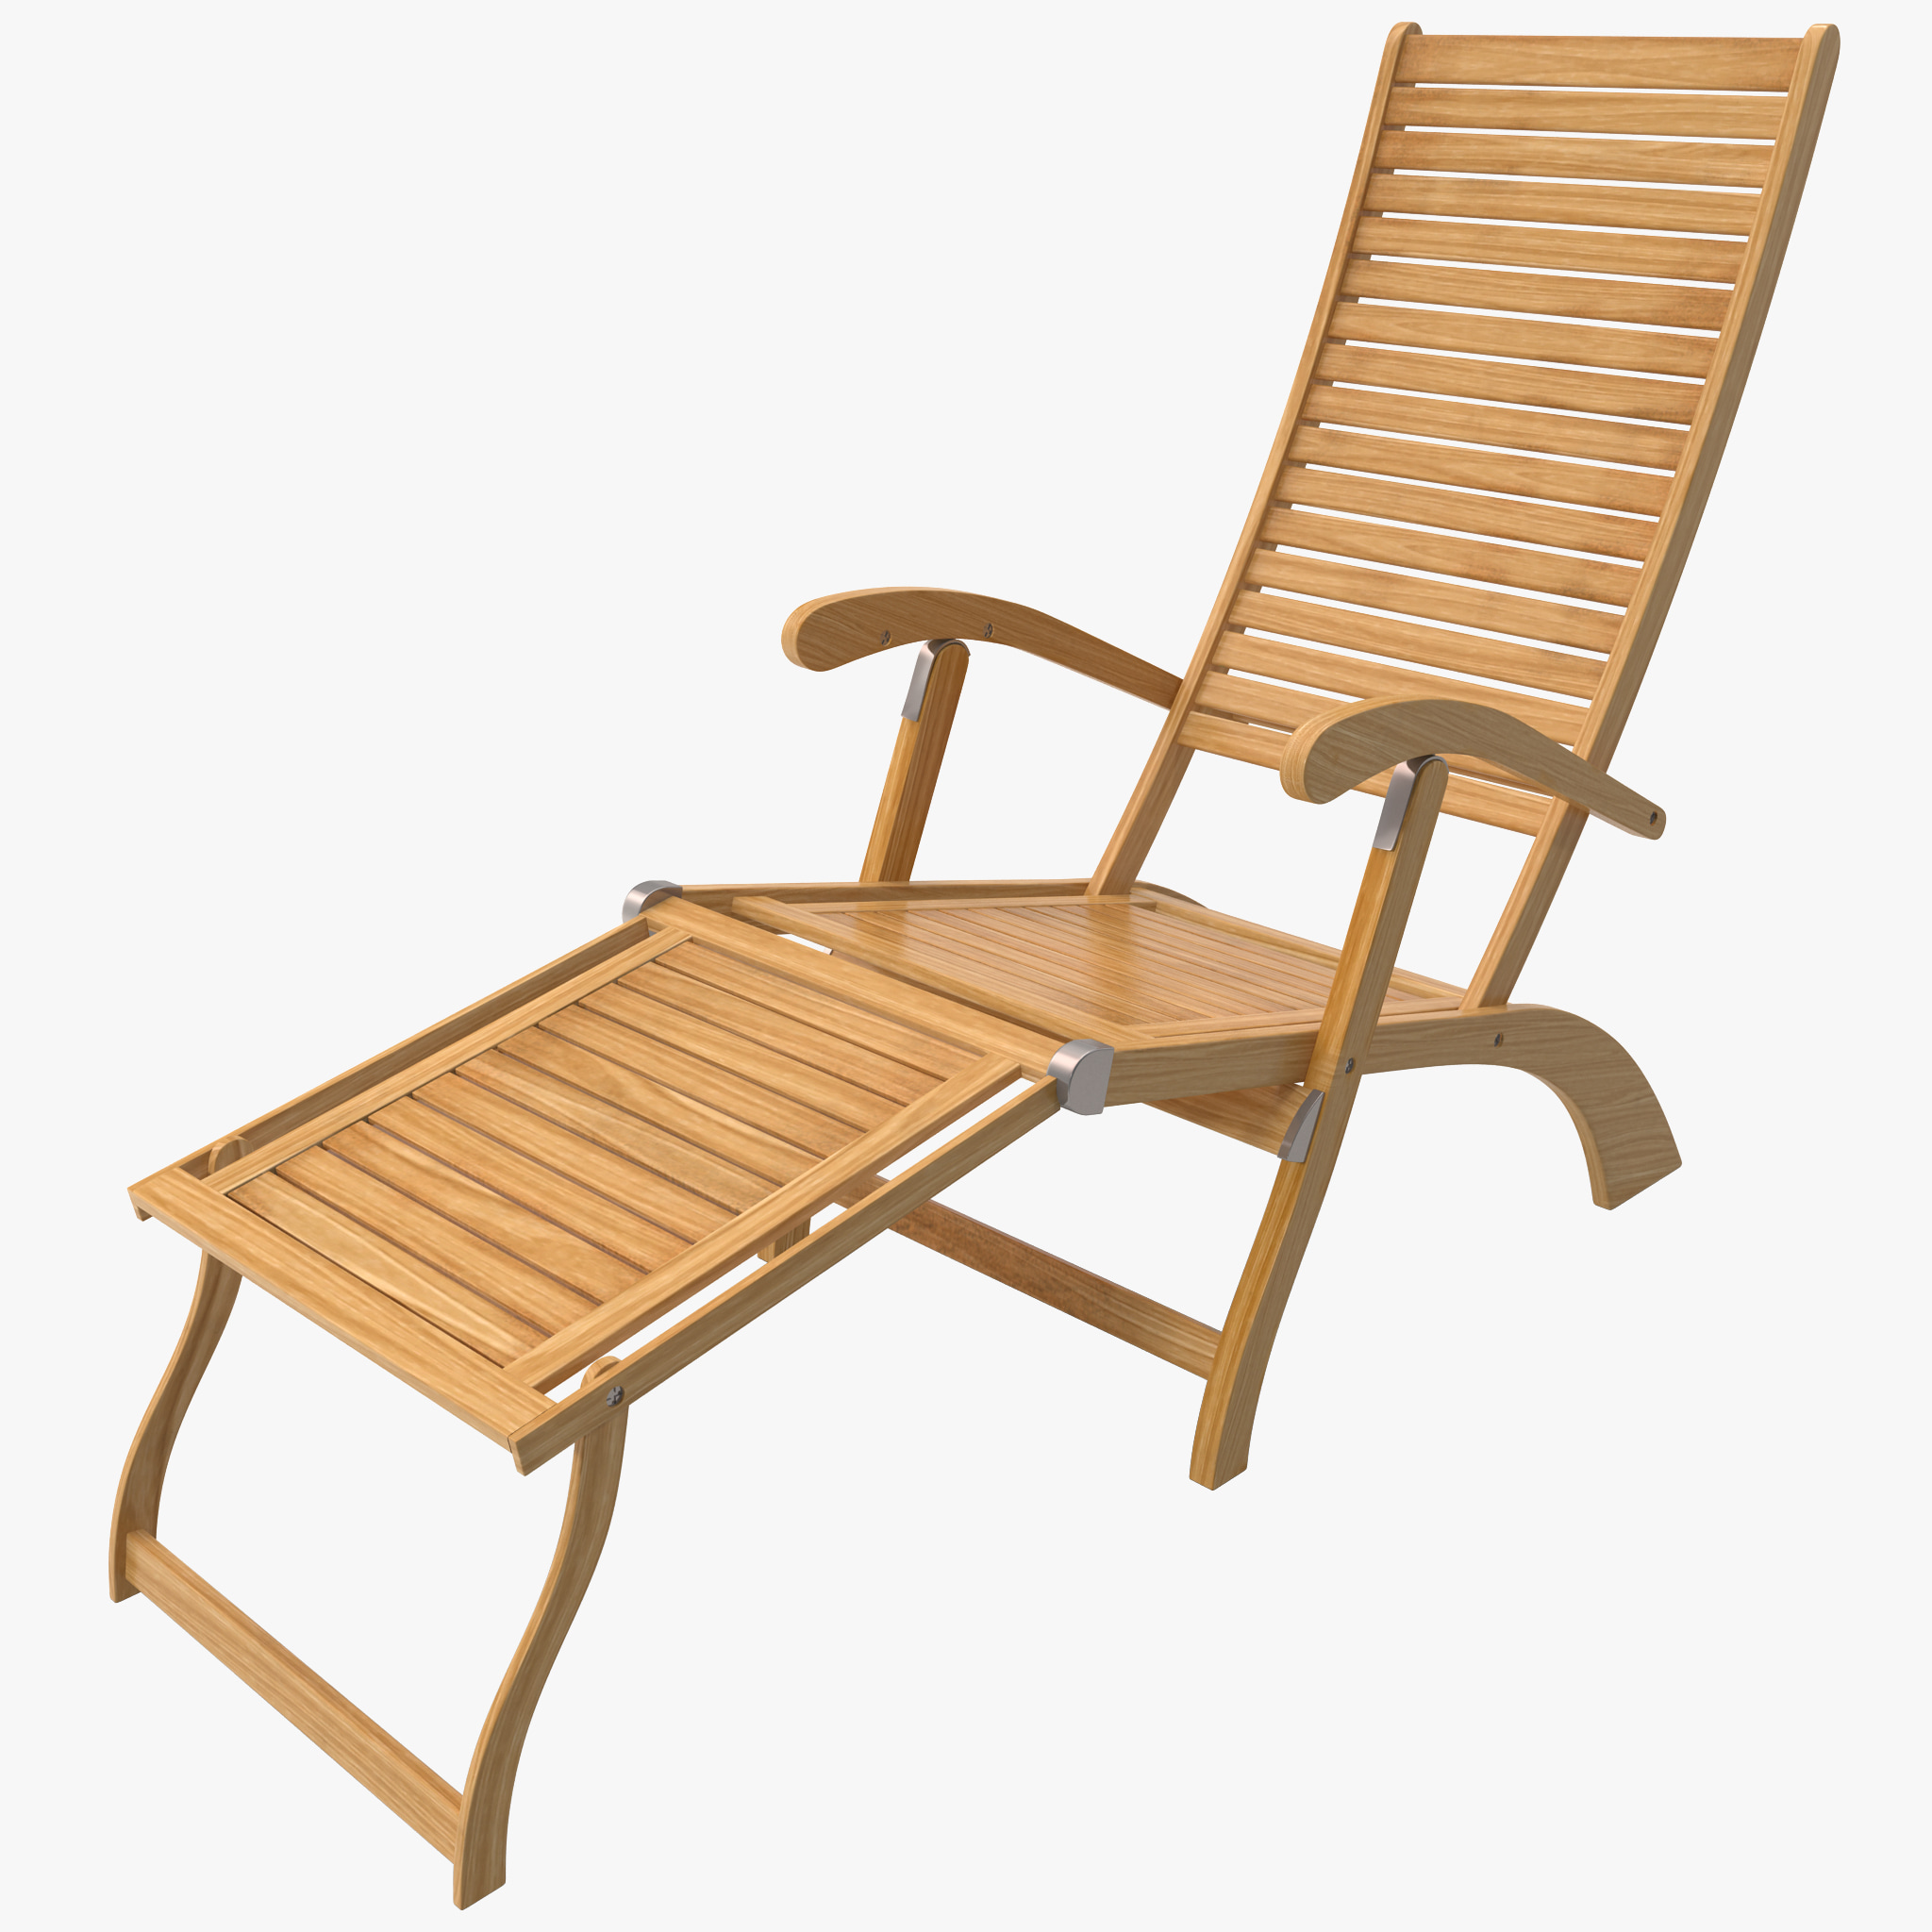 Beach lounge chair png - Chaise Lounge Beach Chair 3d C4d